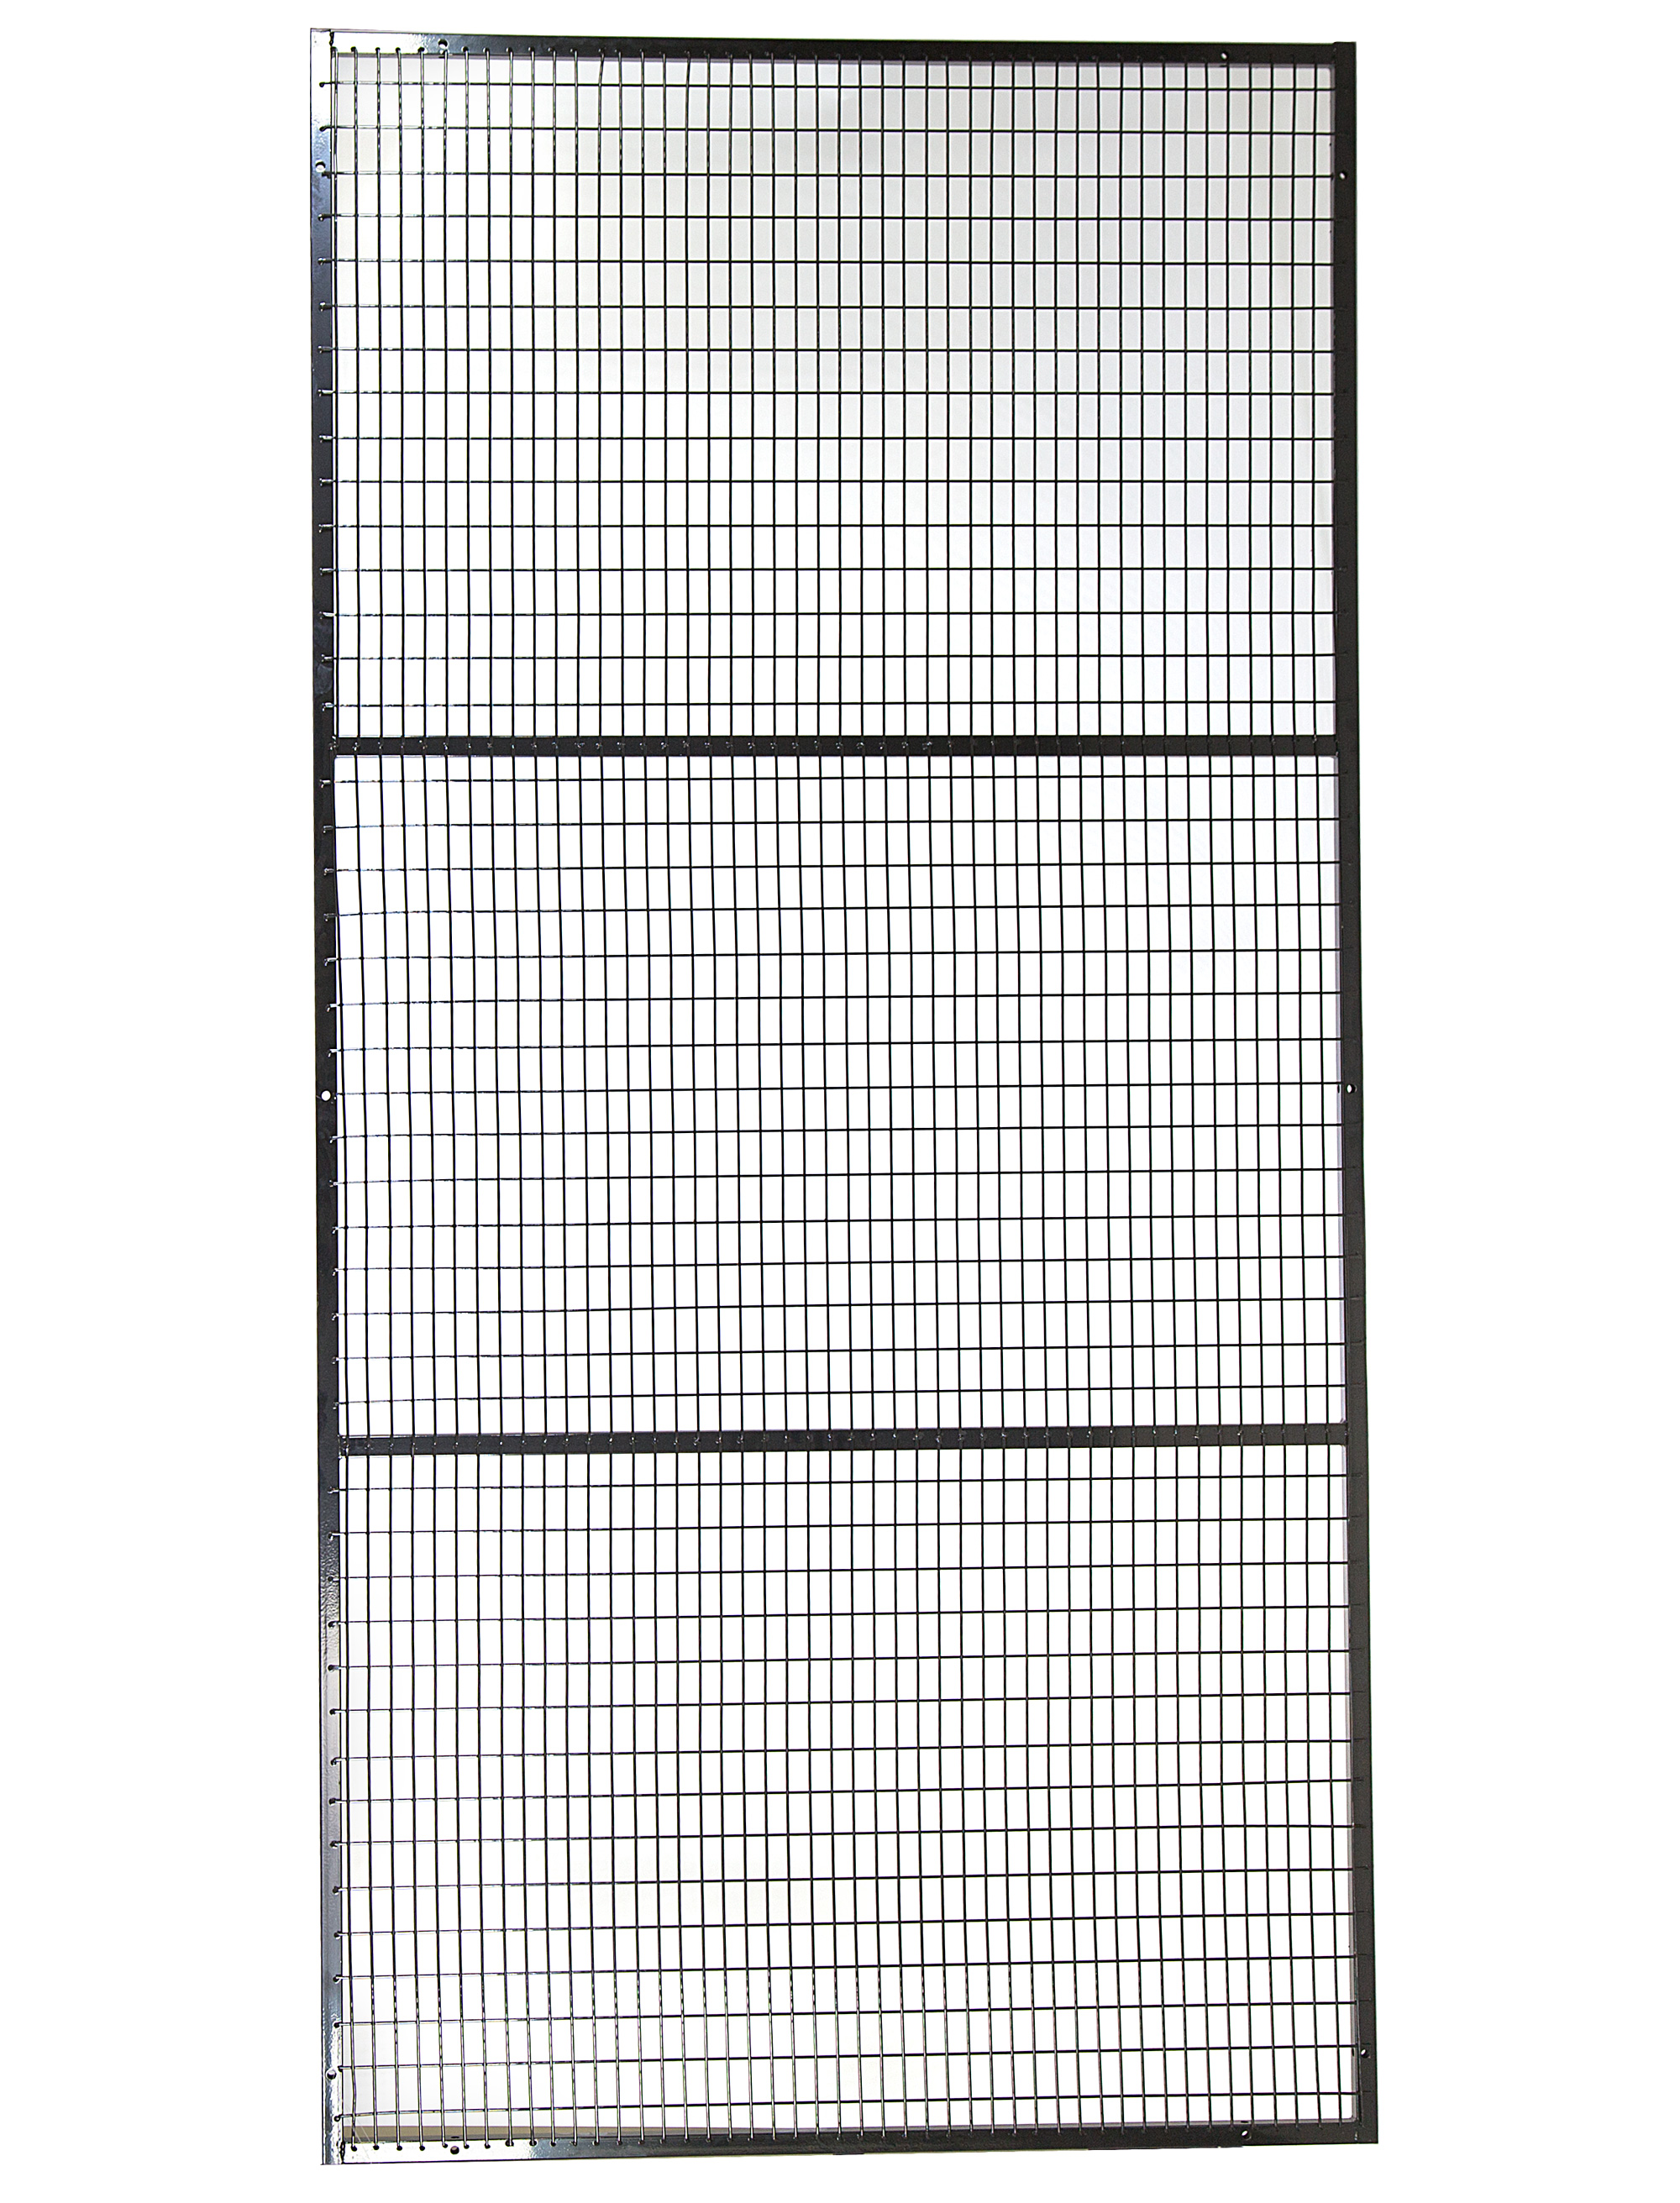 Famous welded wire mesh sizes area inspiration electrical diagram magnificent welded wire mesh sizes area motif electrical diagram greentooth Image collections